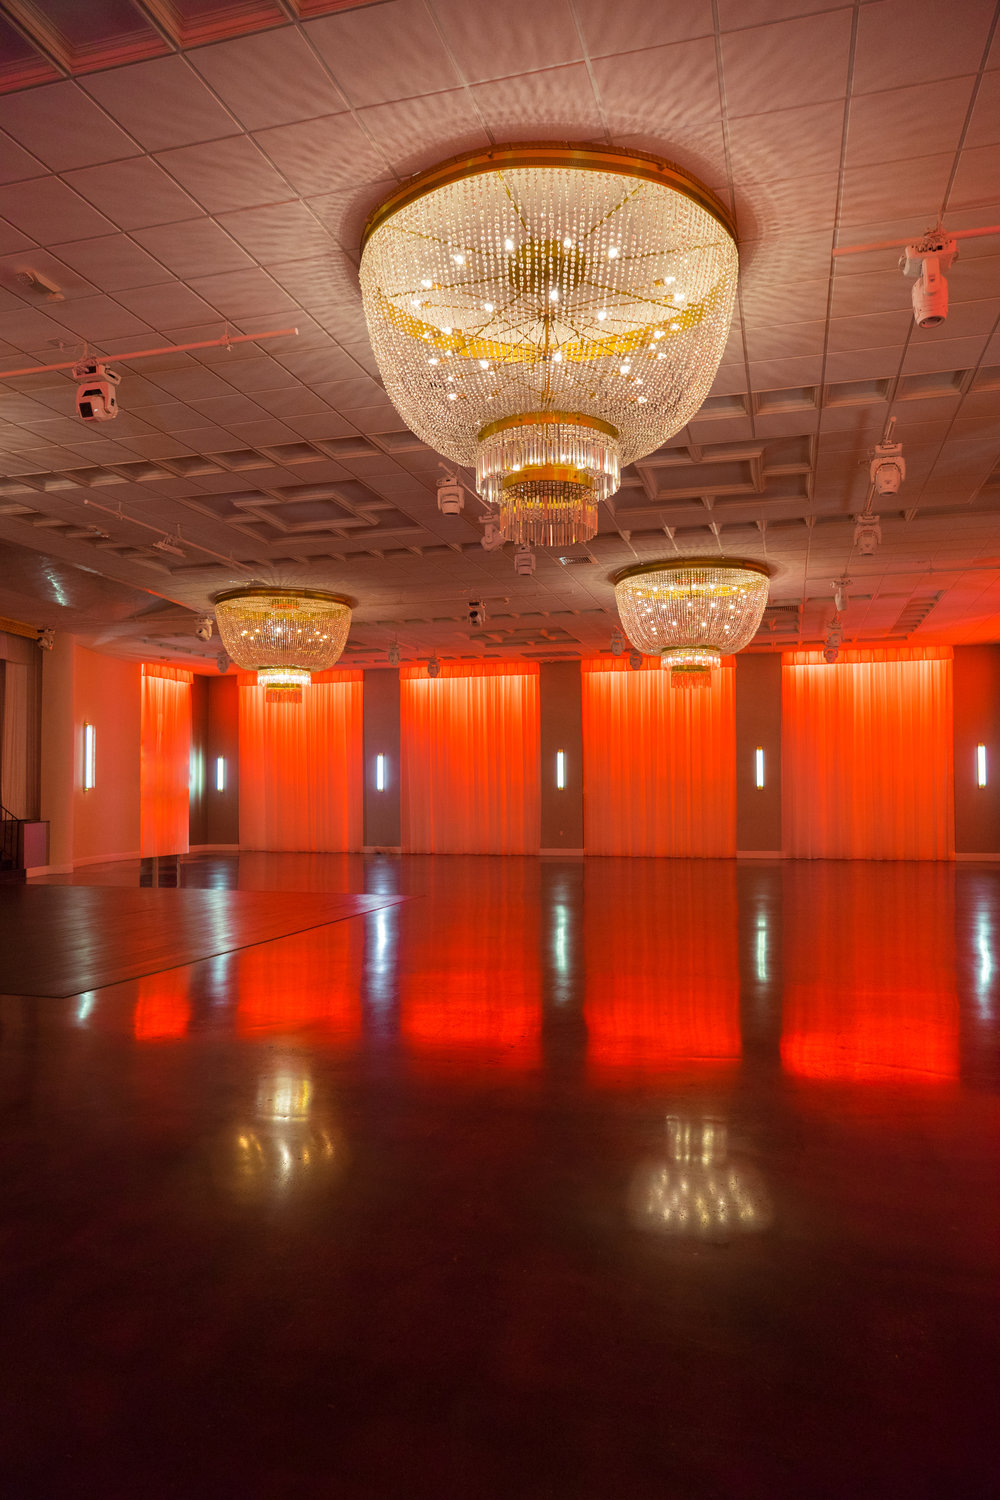 Miami Venue & Ballroom - Weddings, Corporate & Social Events